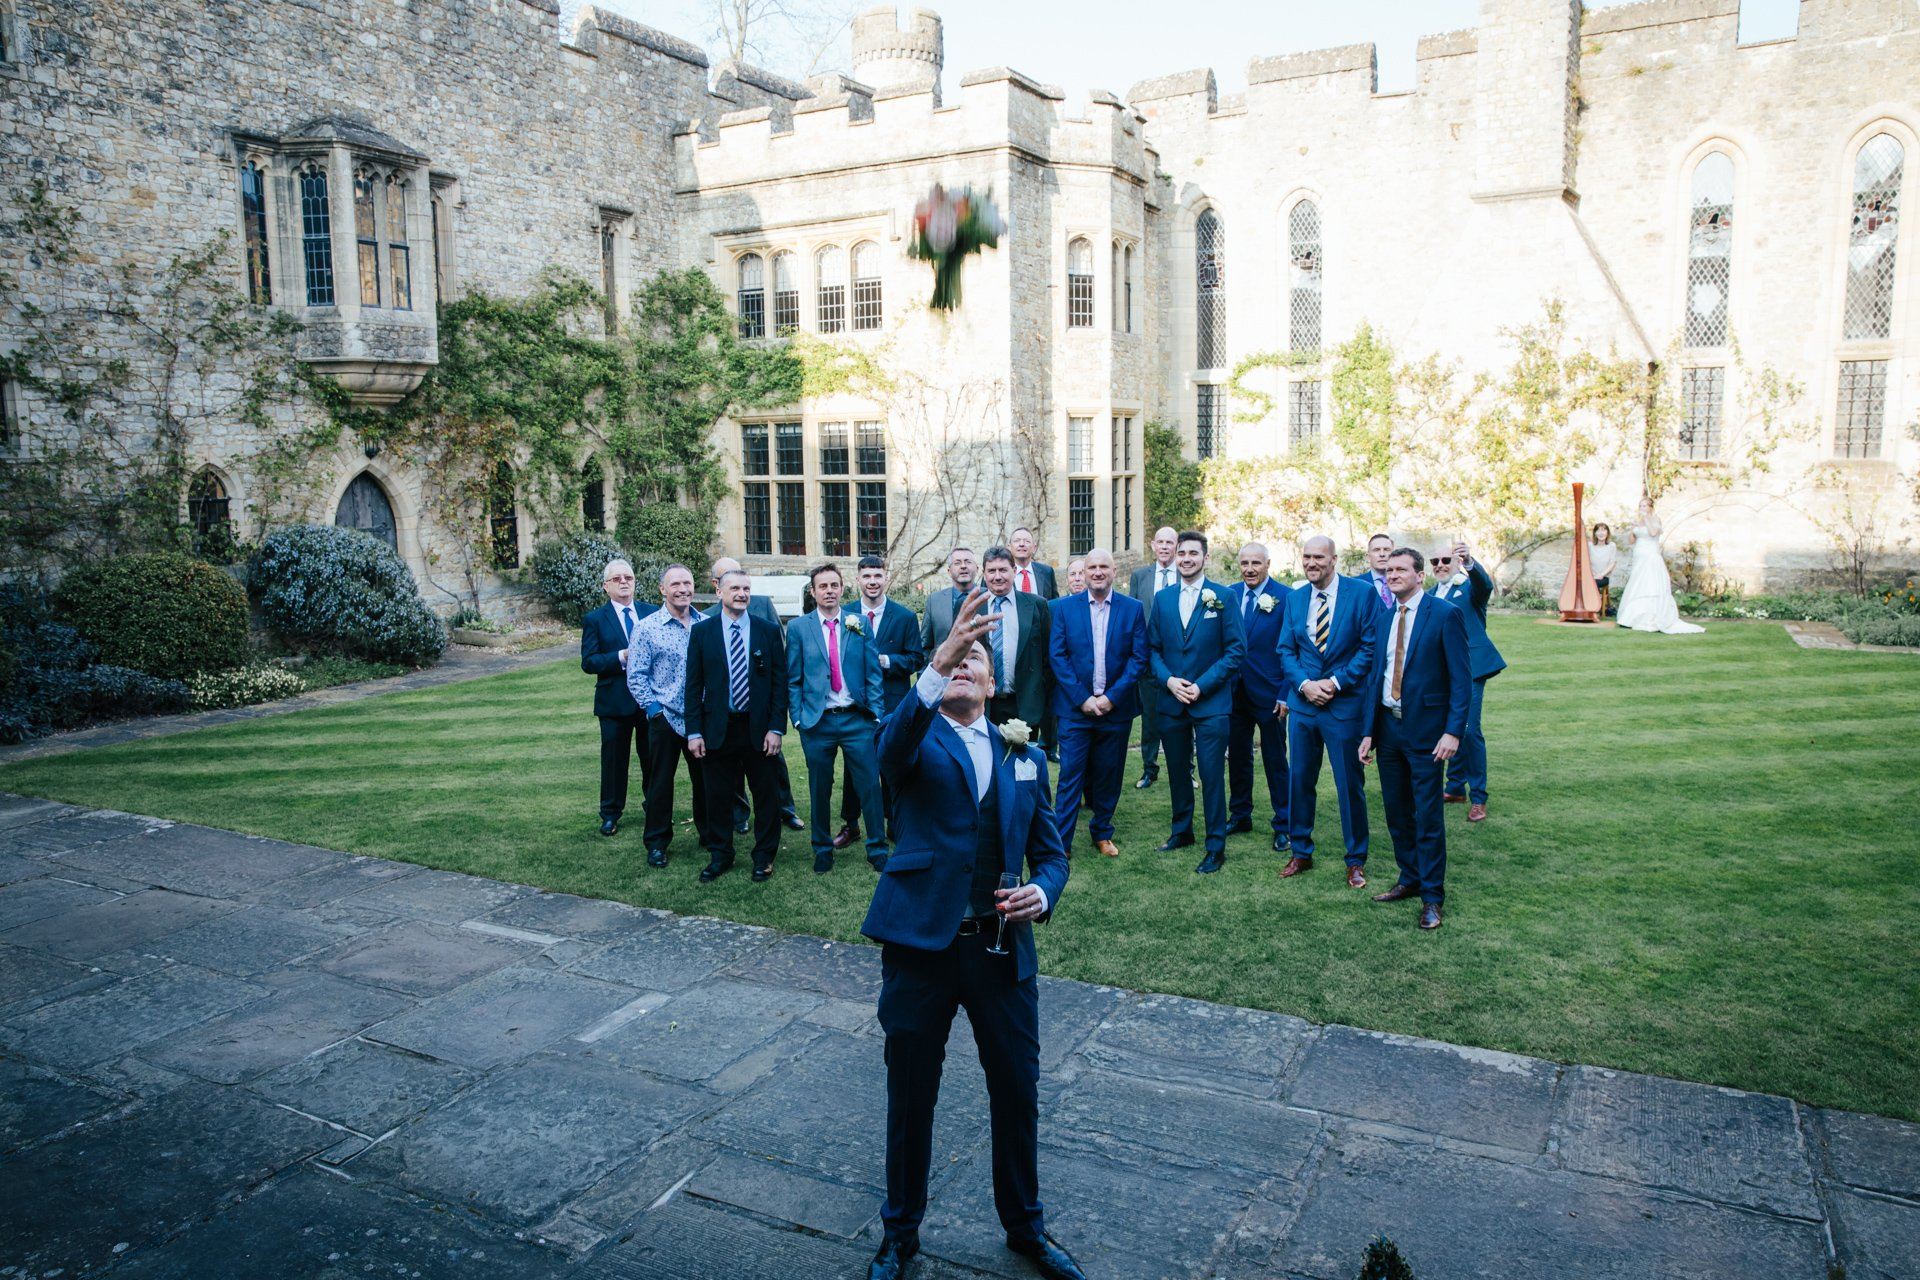 Groom throws brides bouquet to his friends in the Courtyard at Allington Castle